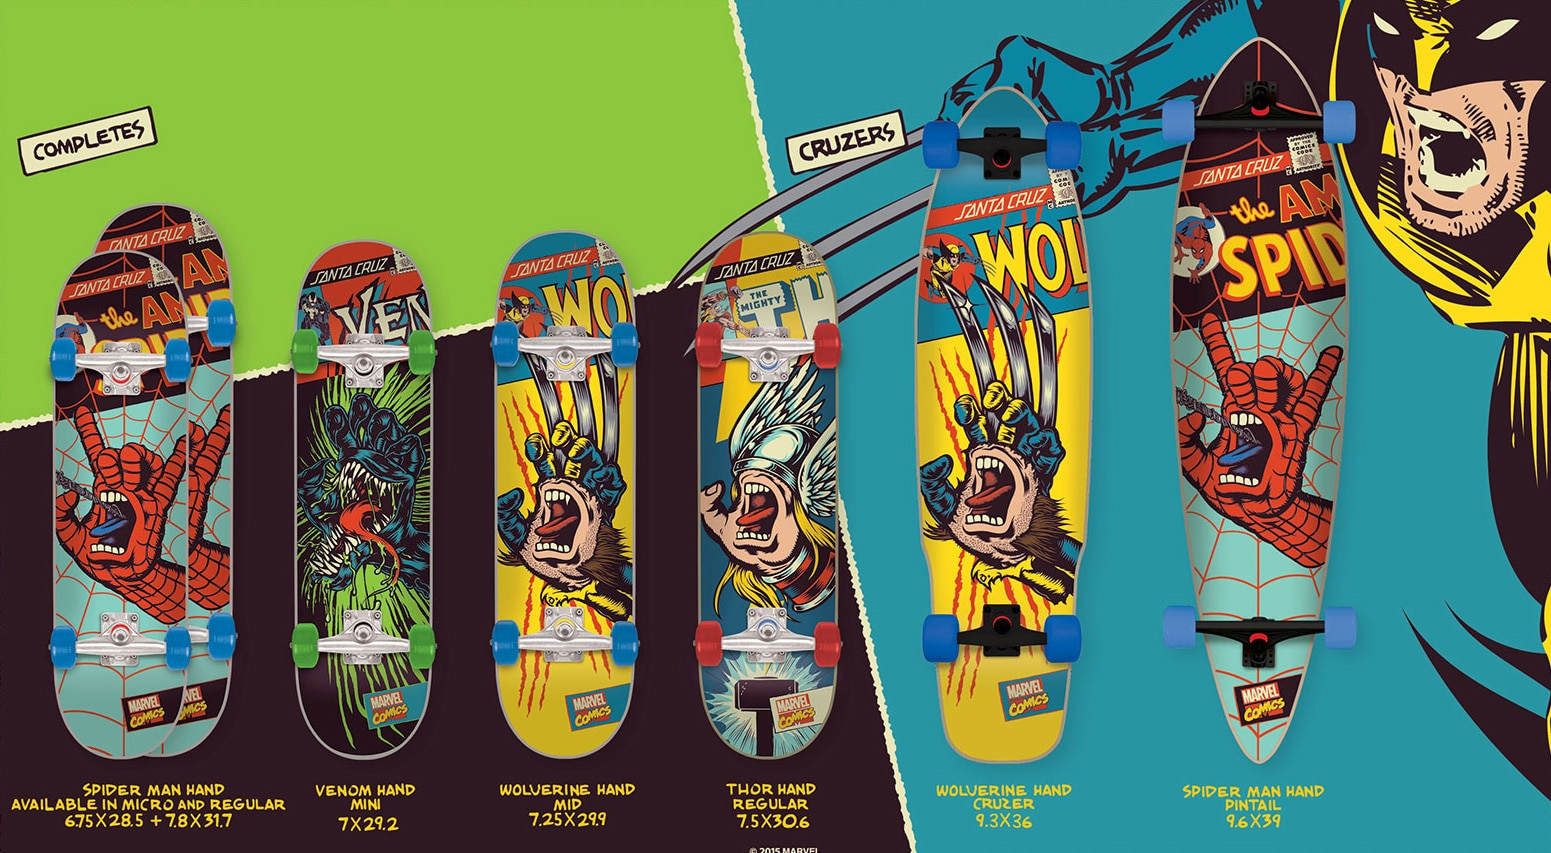 Santa Cruz Marvel Complete Boards and Cruzers